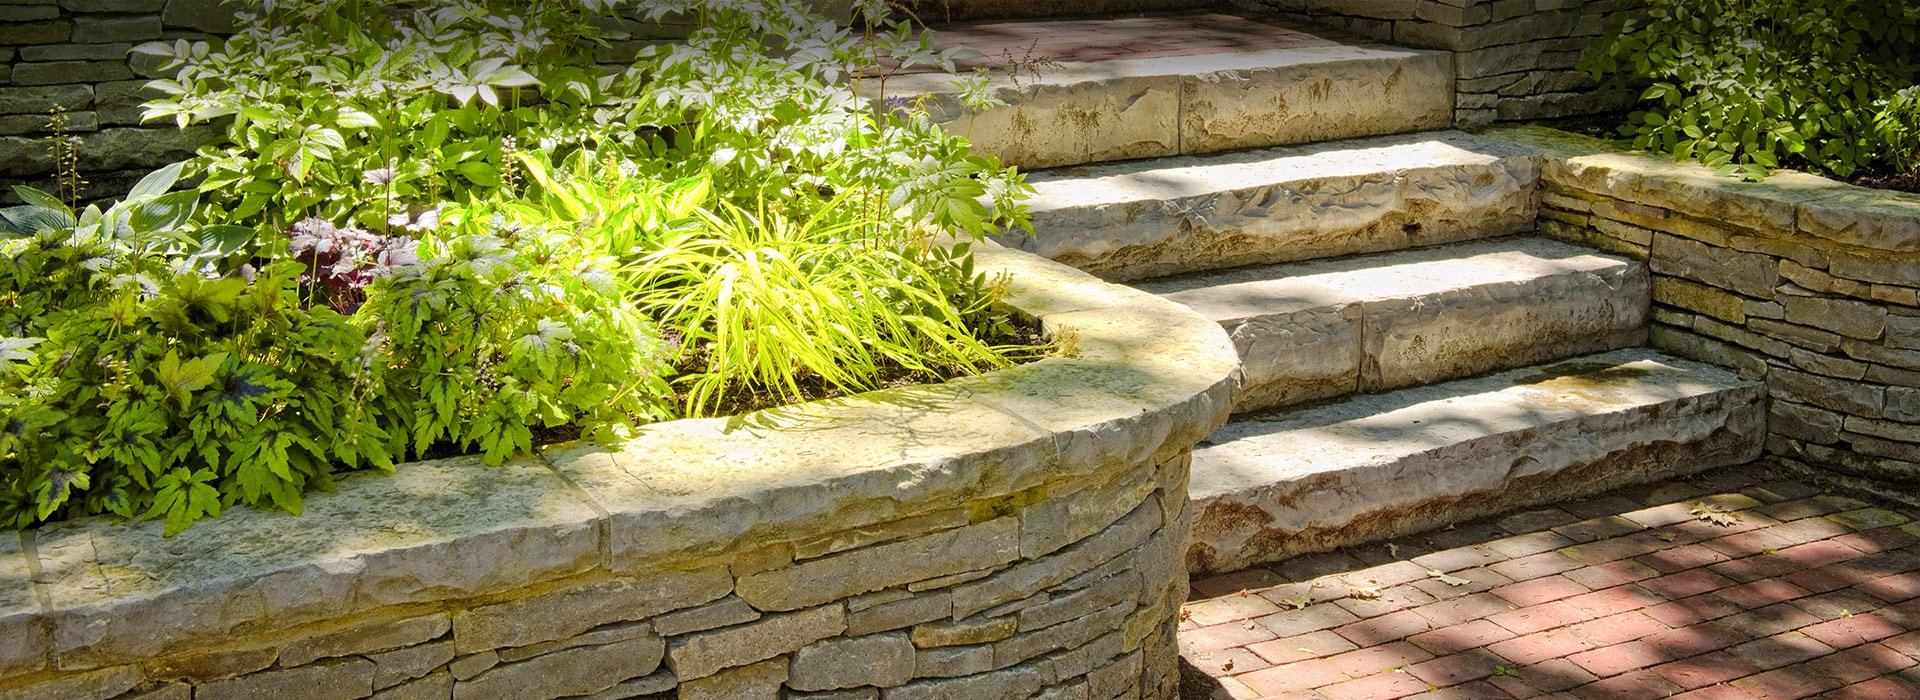 North Atlanta's Choice Distributor for Quality Landscape Products